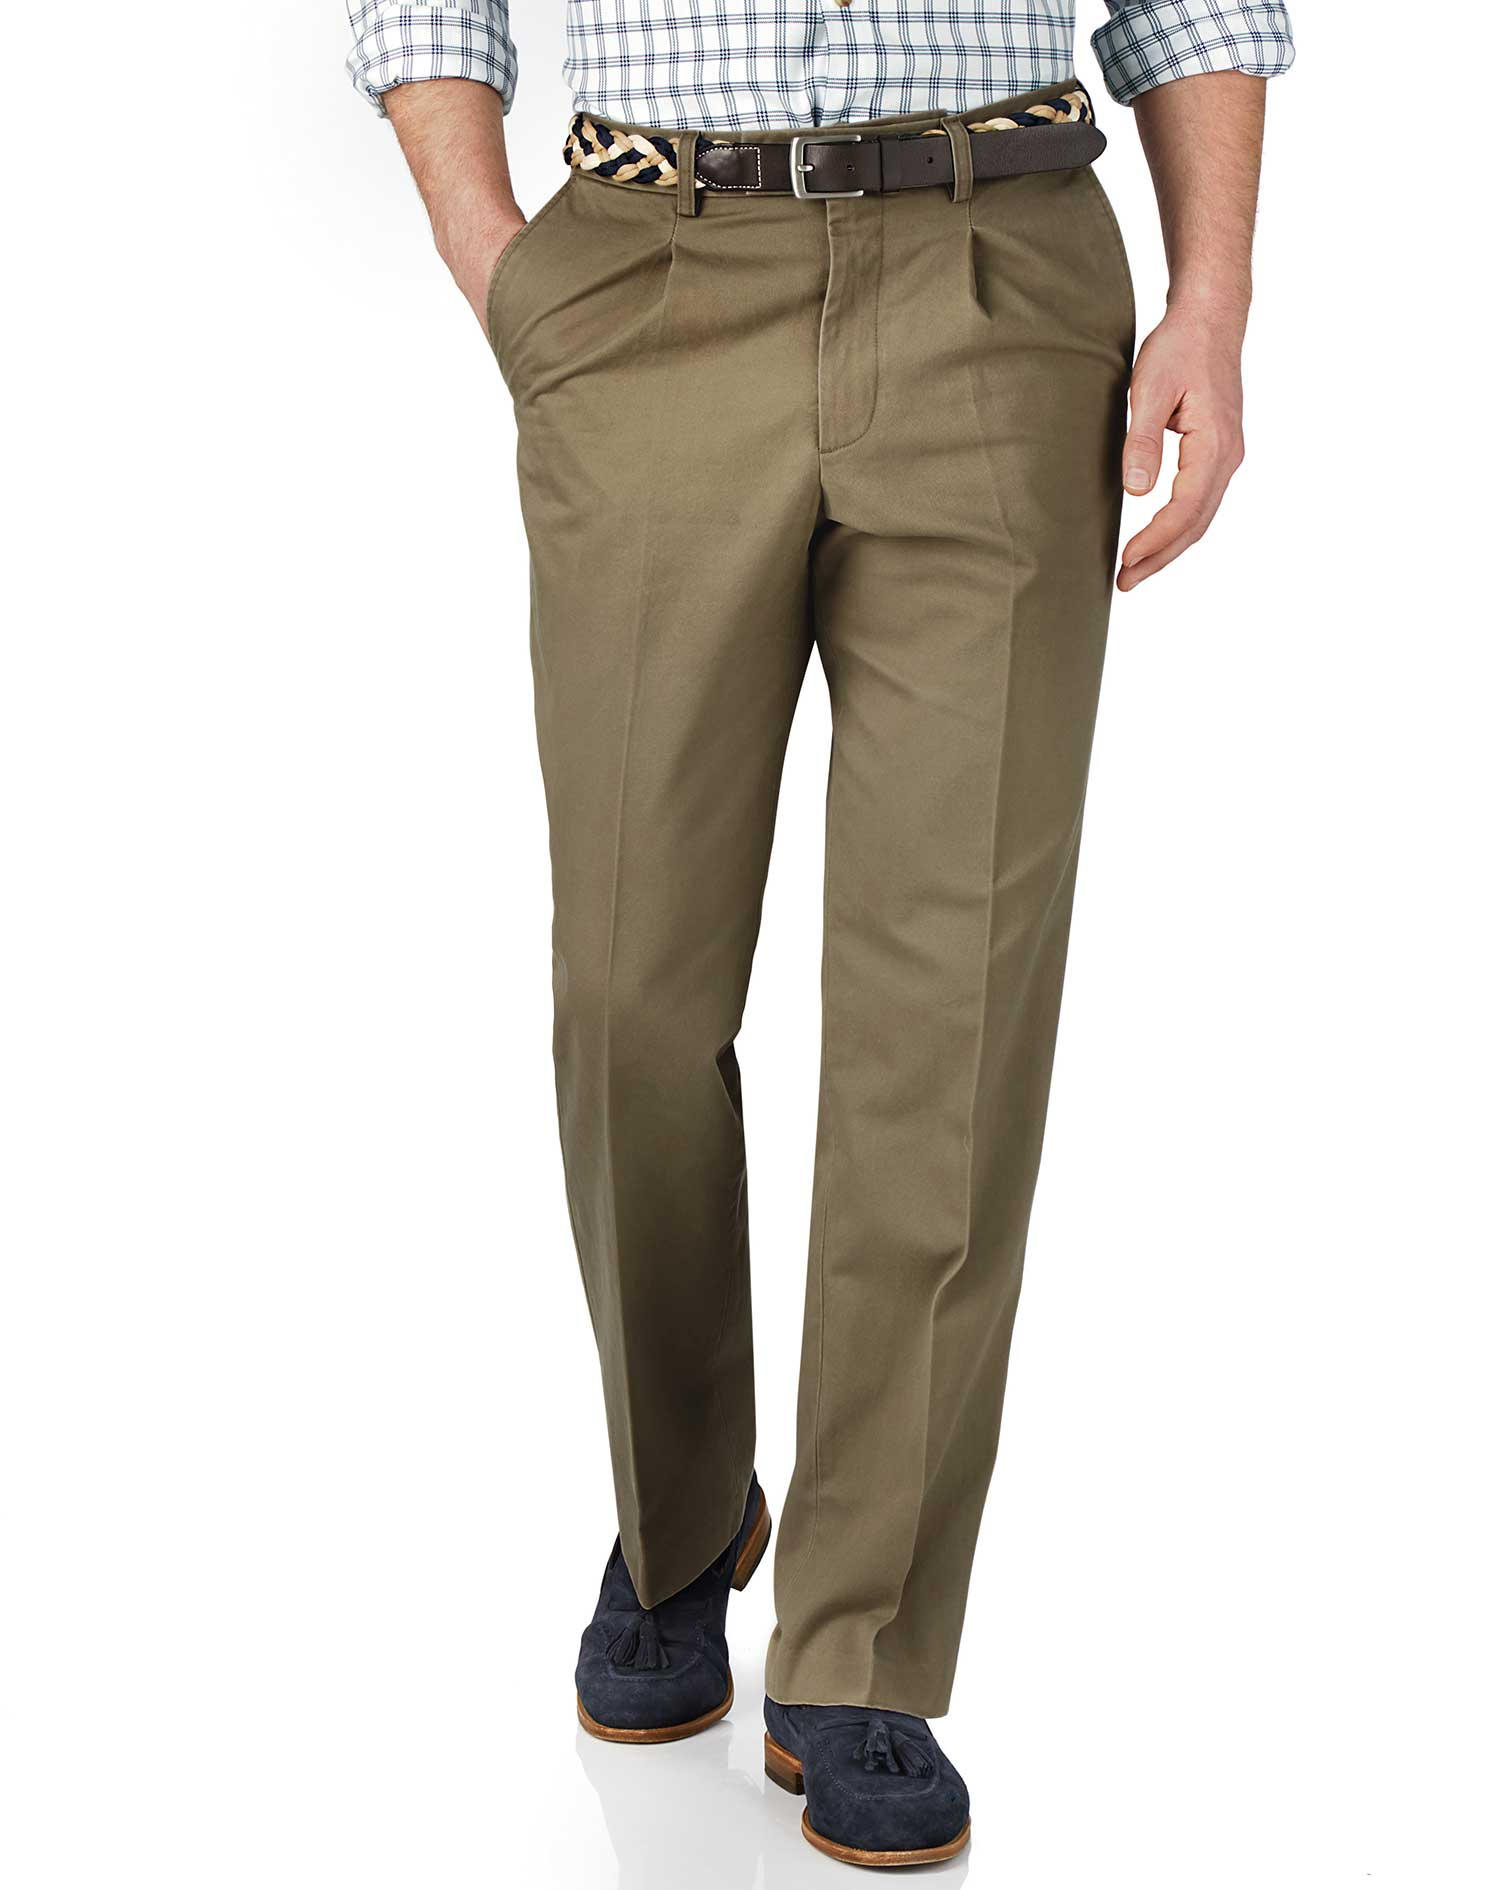 Beige Classic Fit Single Pleat Cotton Chino Trousers Size W42 L38 by Charles Tyrwhitt